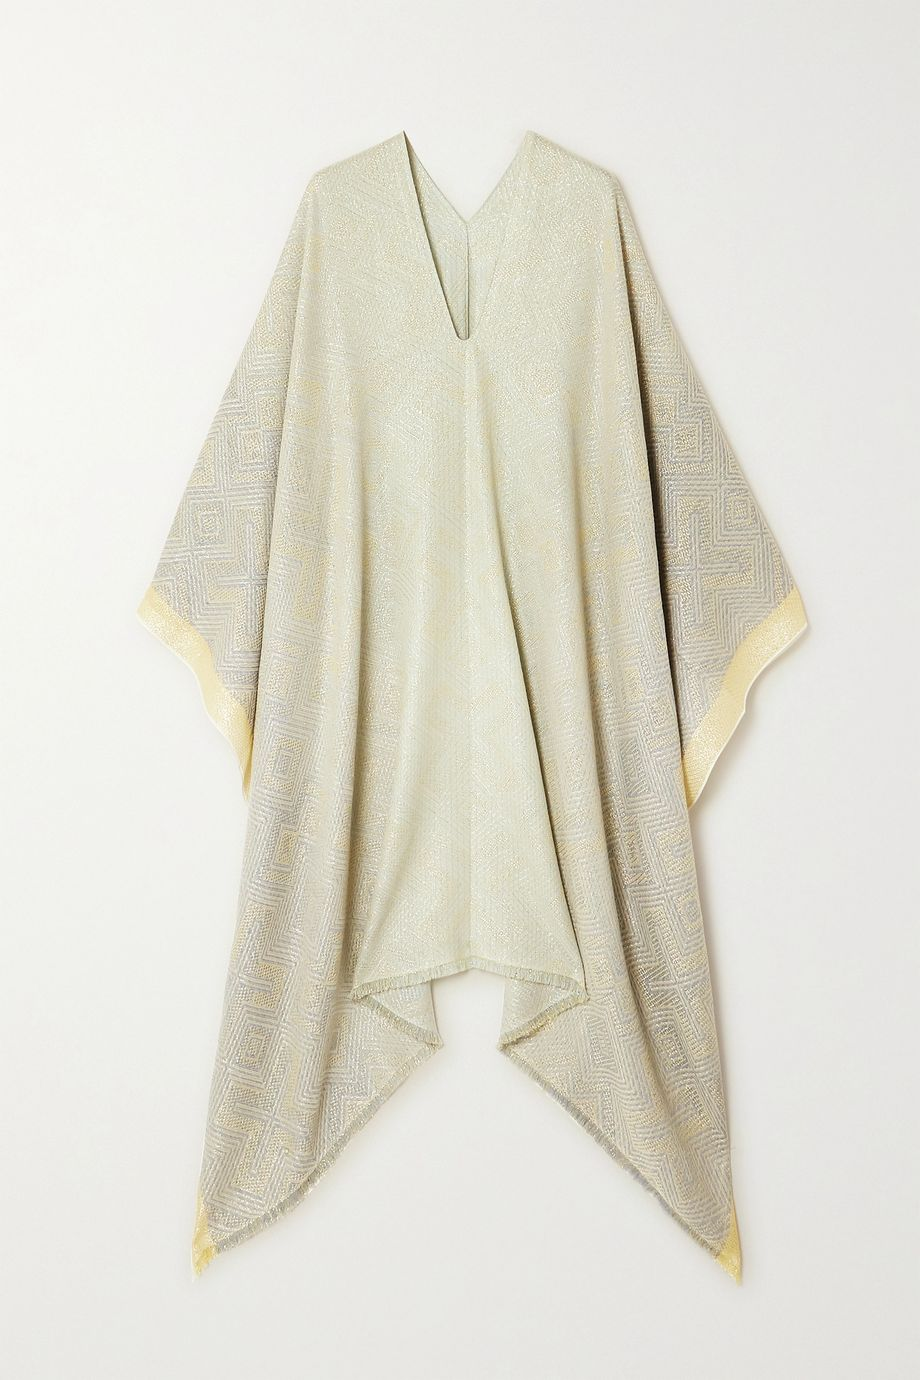 Missoni Fringed metallic wool-blend jacquard poncho